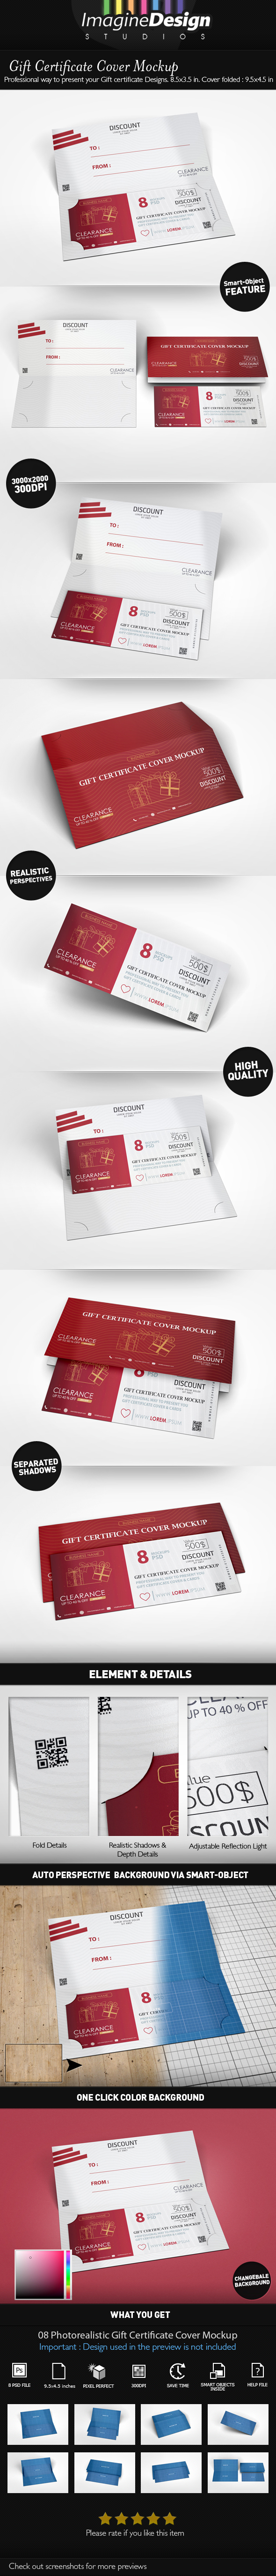 Gift Certificate Cover Mock-up by idesignstudio